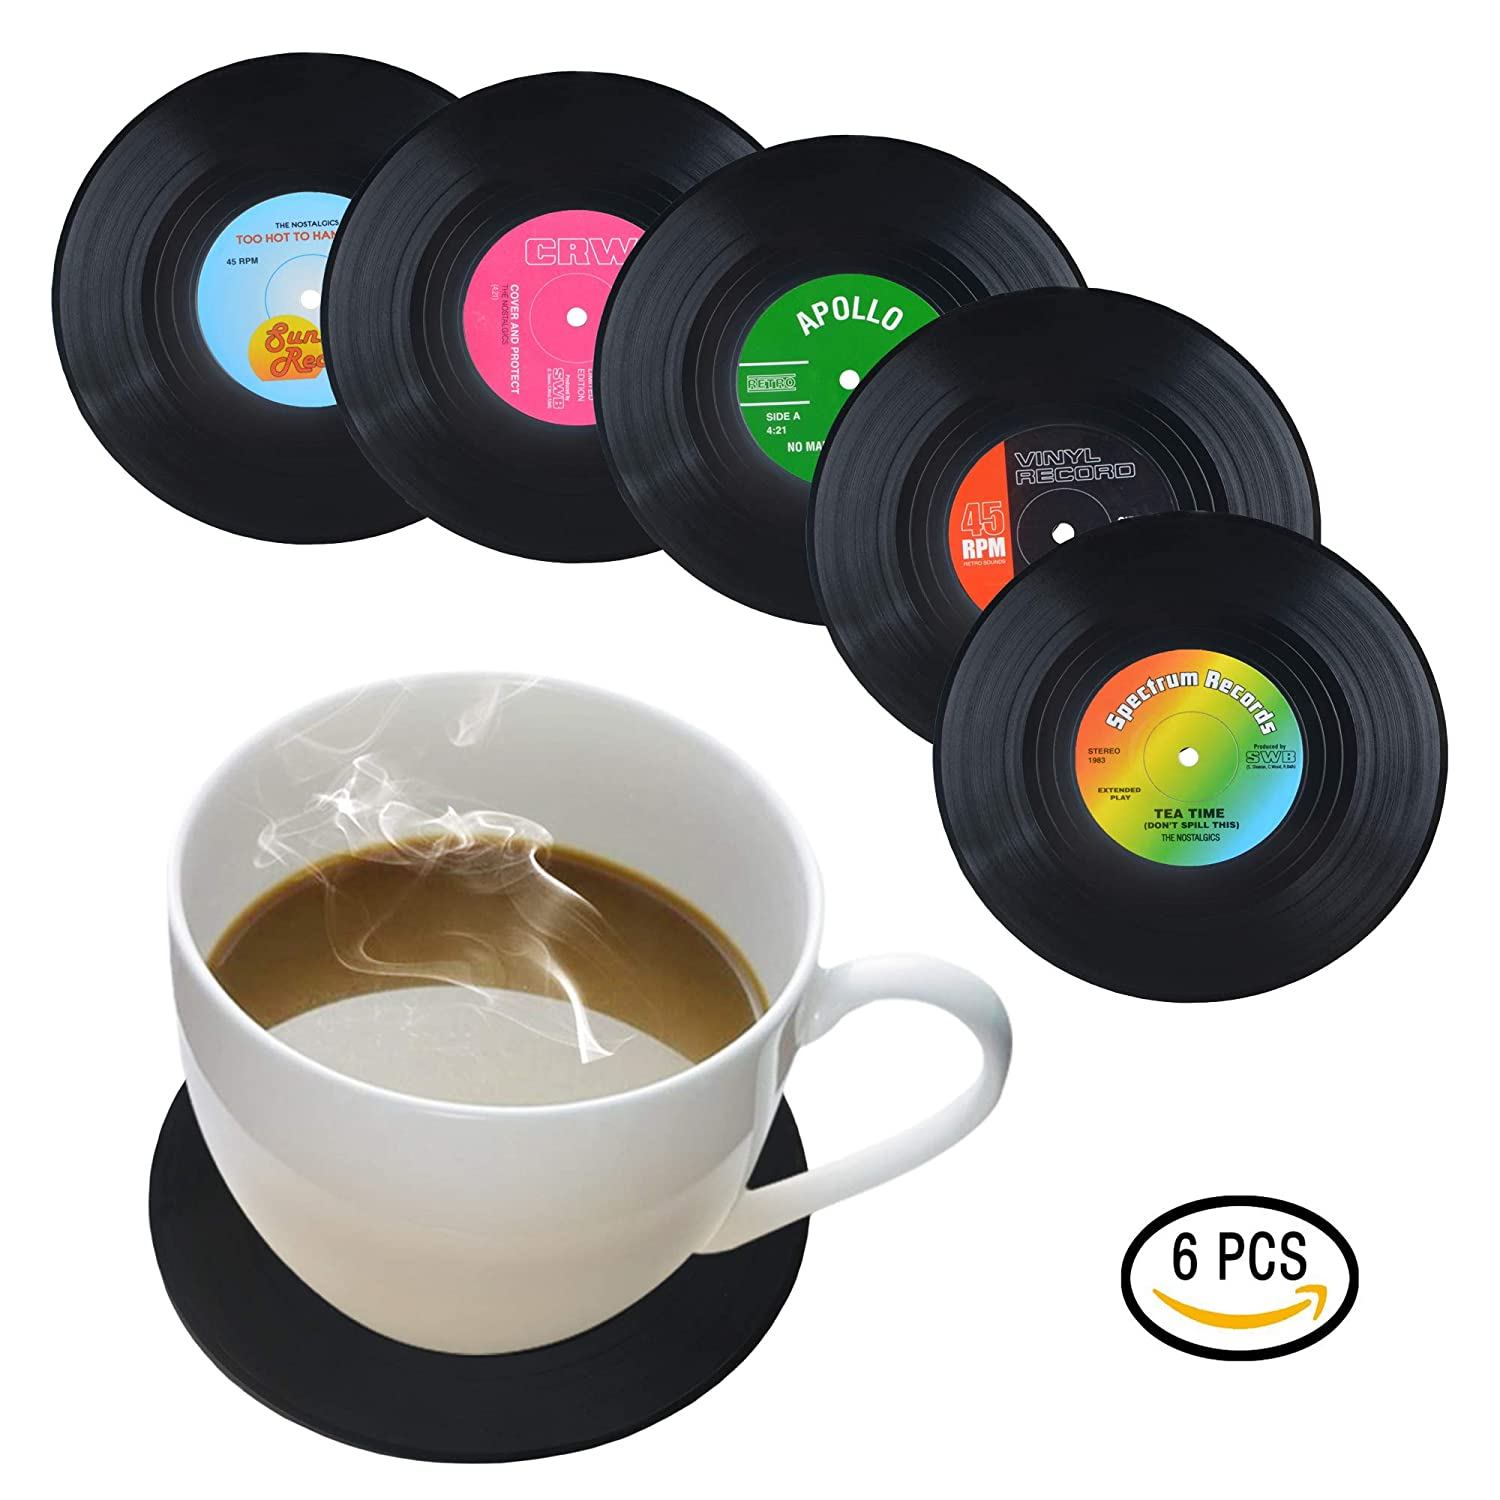 Coasters for Drinks by HIRUN - Set of 6 Vinyl Record Retro Music Coasters - Art Car Bar Tea Coffee Table Mug Beer Bottle Beverages Absorbent for Wine Glass Rubber Black Cup Mat - Large 4.2 inch Size BZ1-A